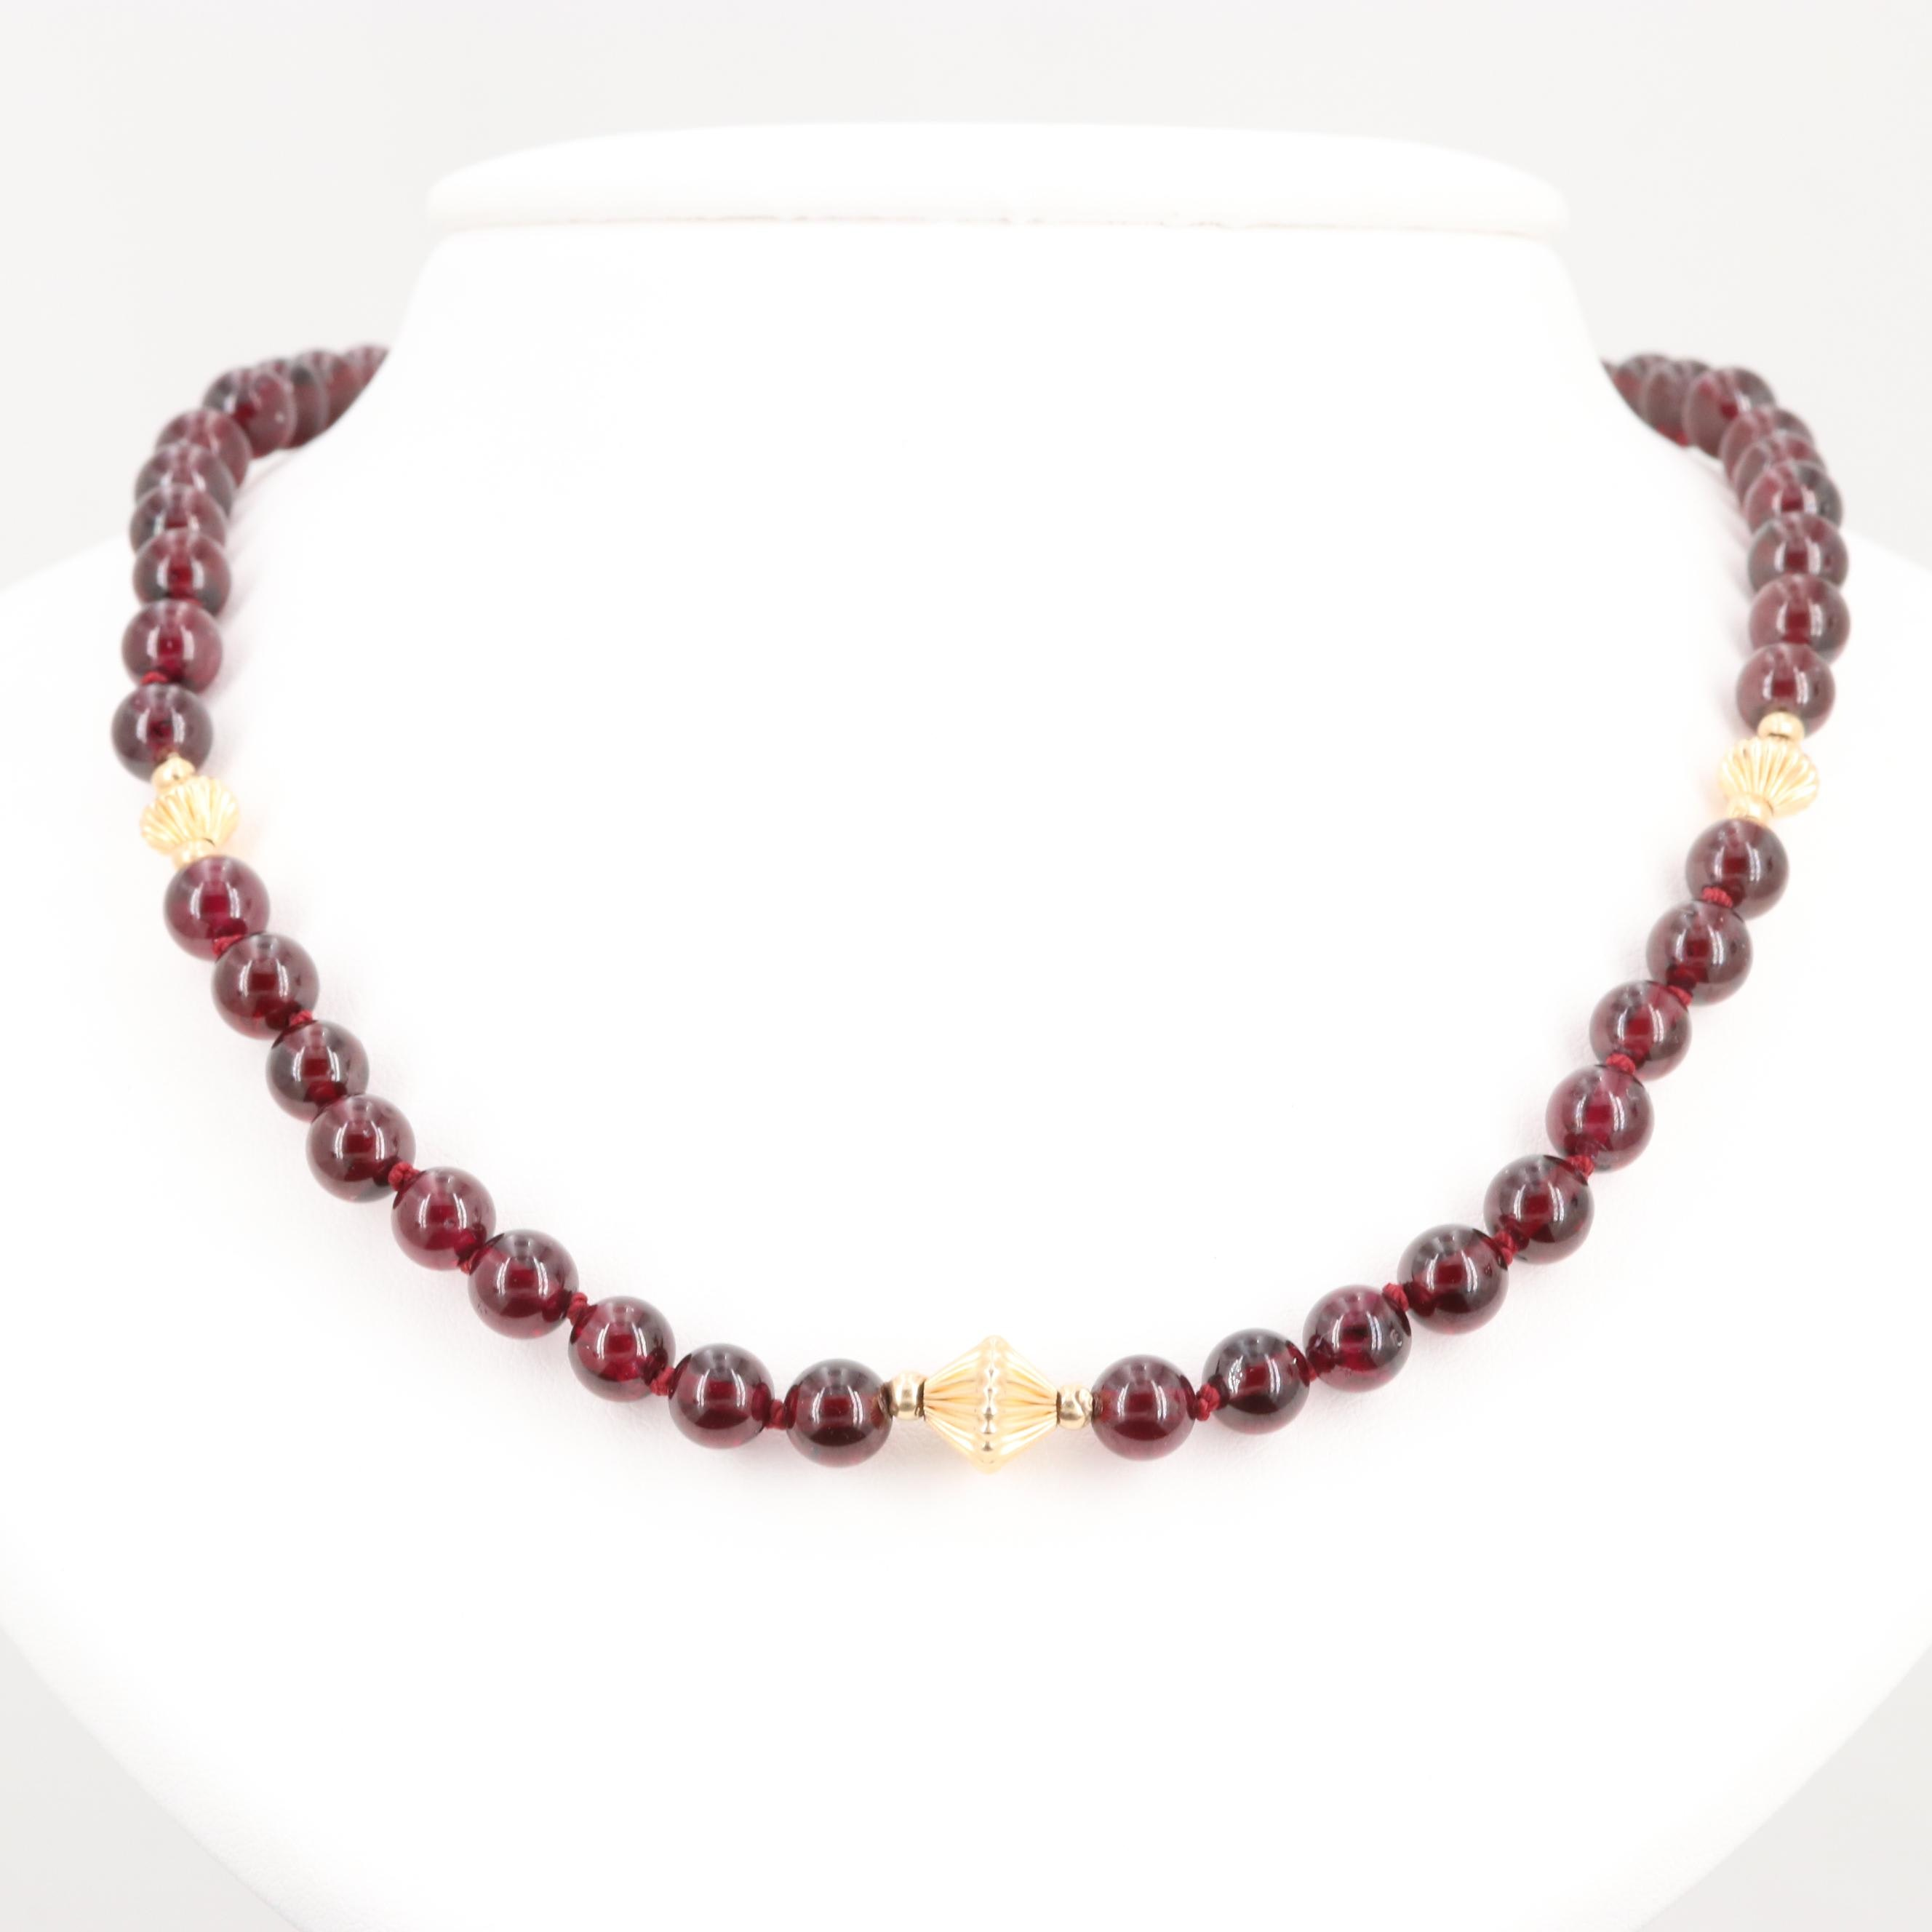 14K Yellow Gold and Gold Tone Garnet Beaded Necklace